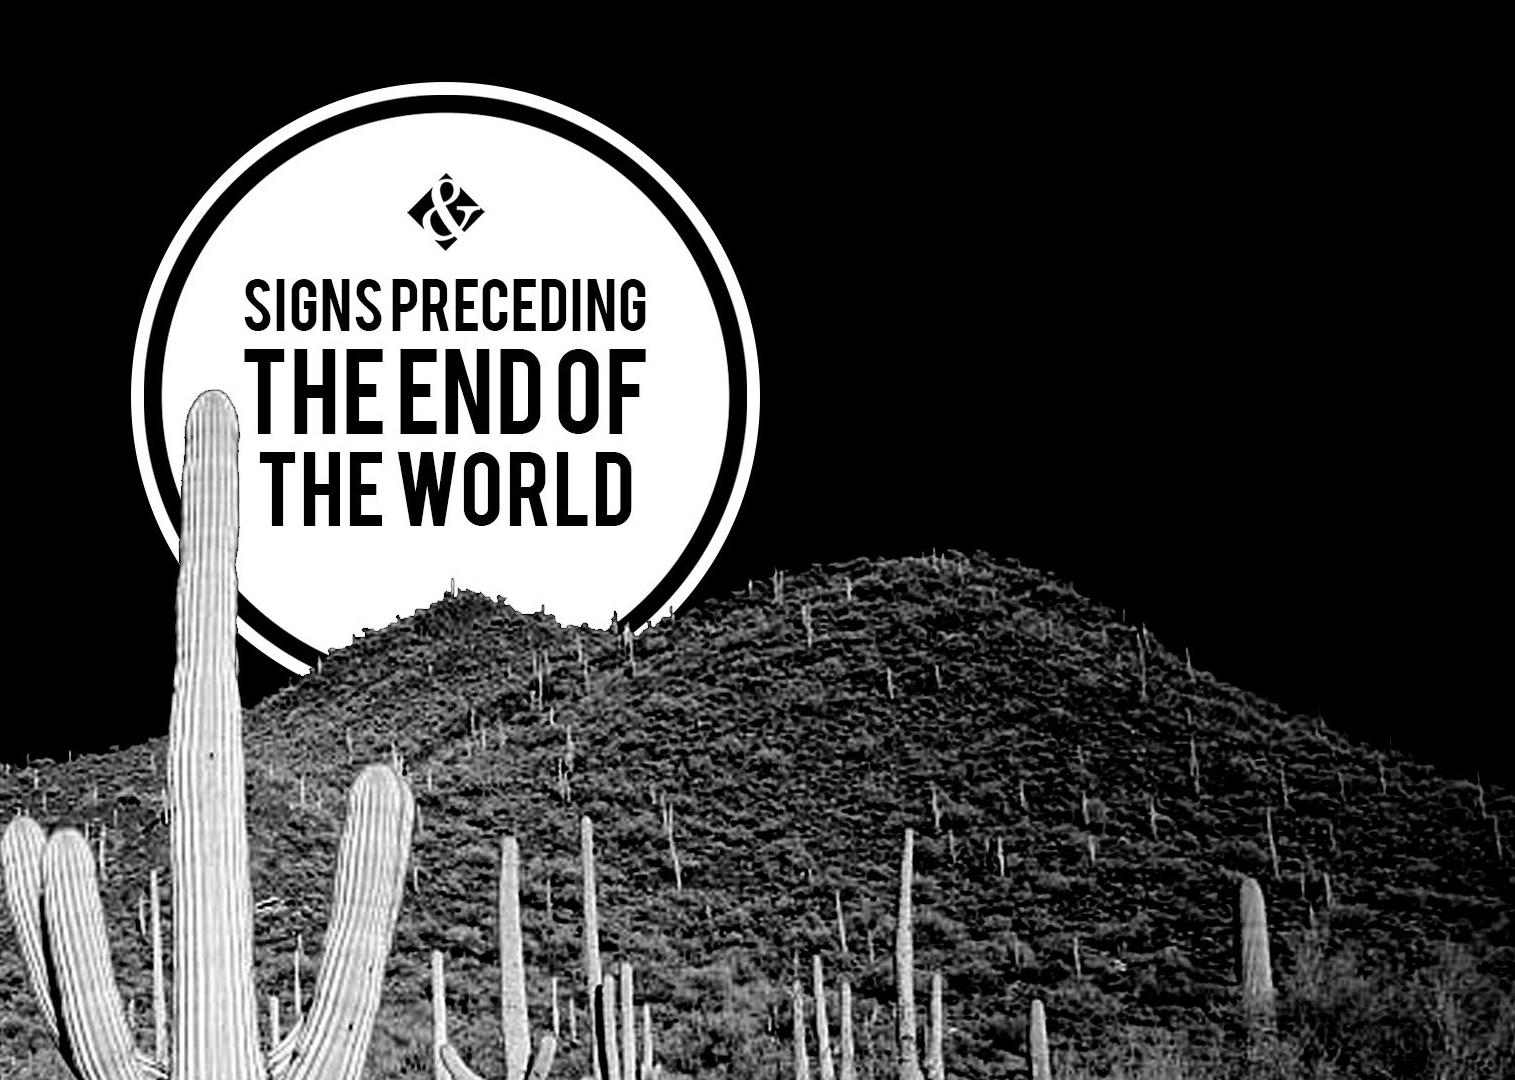 Signs Preceding The End of the World photo